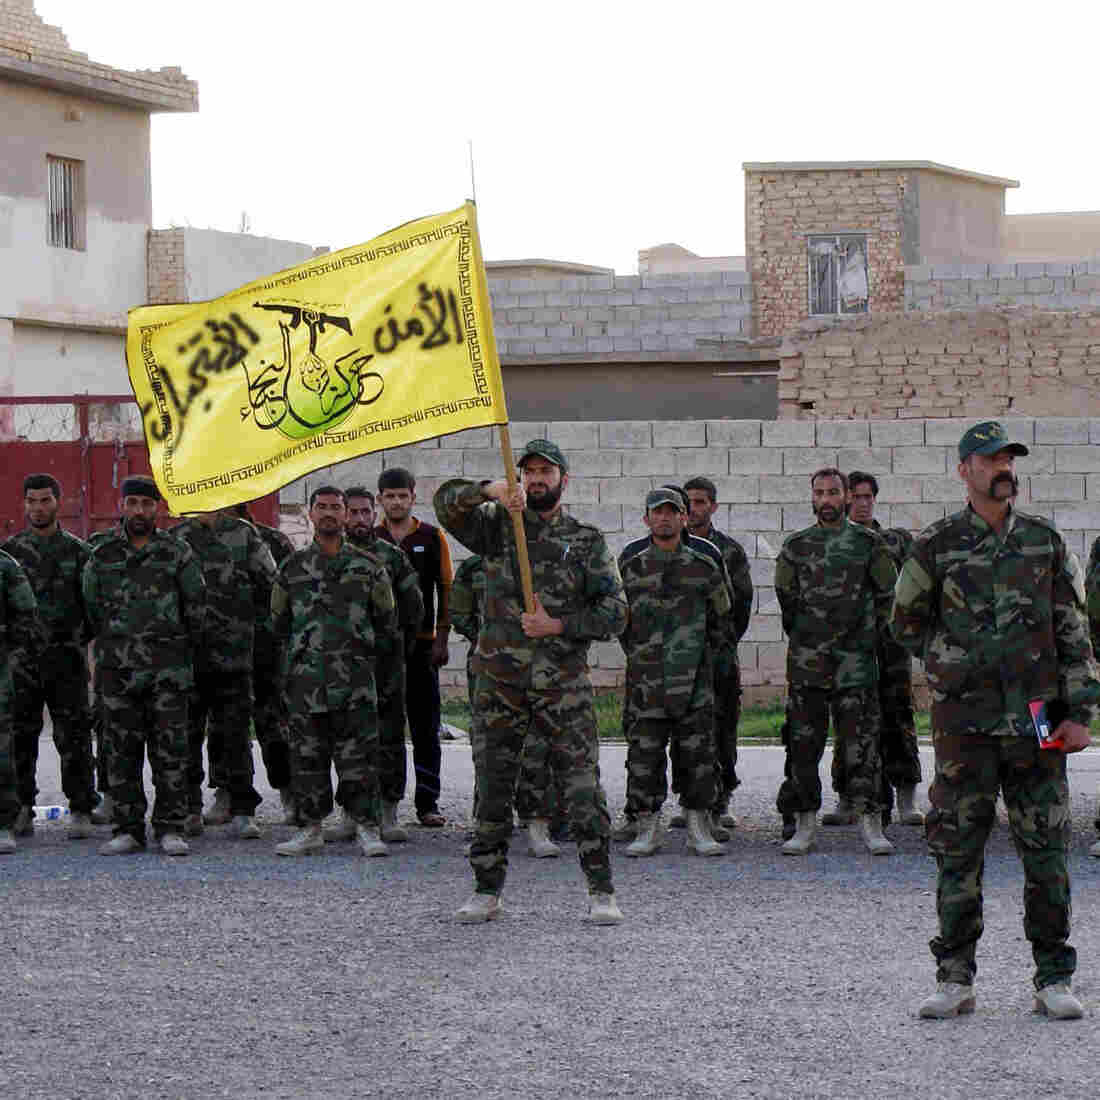 After Retaking Iraqi City, Shiite Militias Accused Of Targeting Sunnis